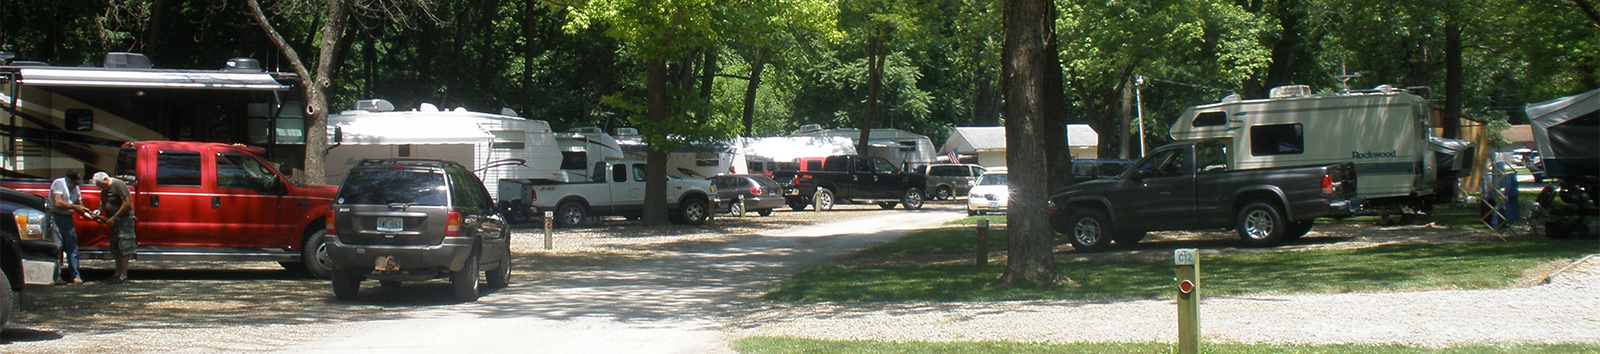 Full hookup campgrounds in missouri, porn russian angelique